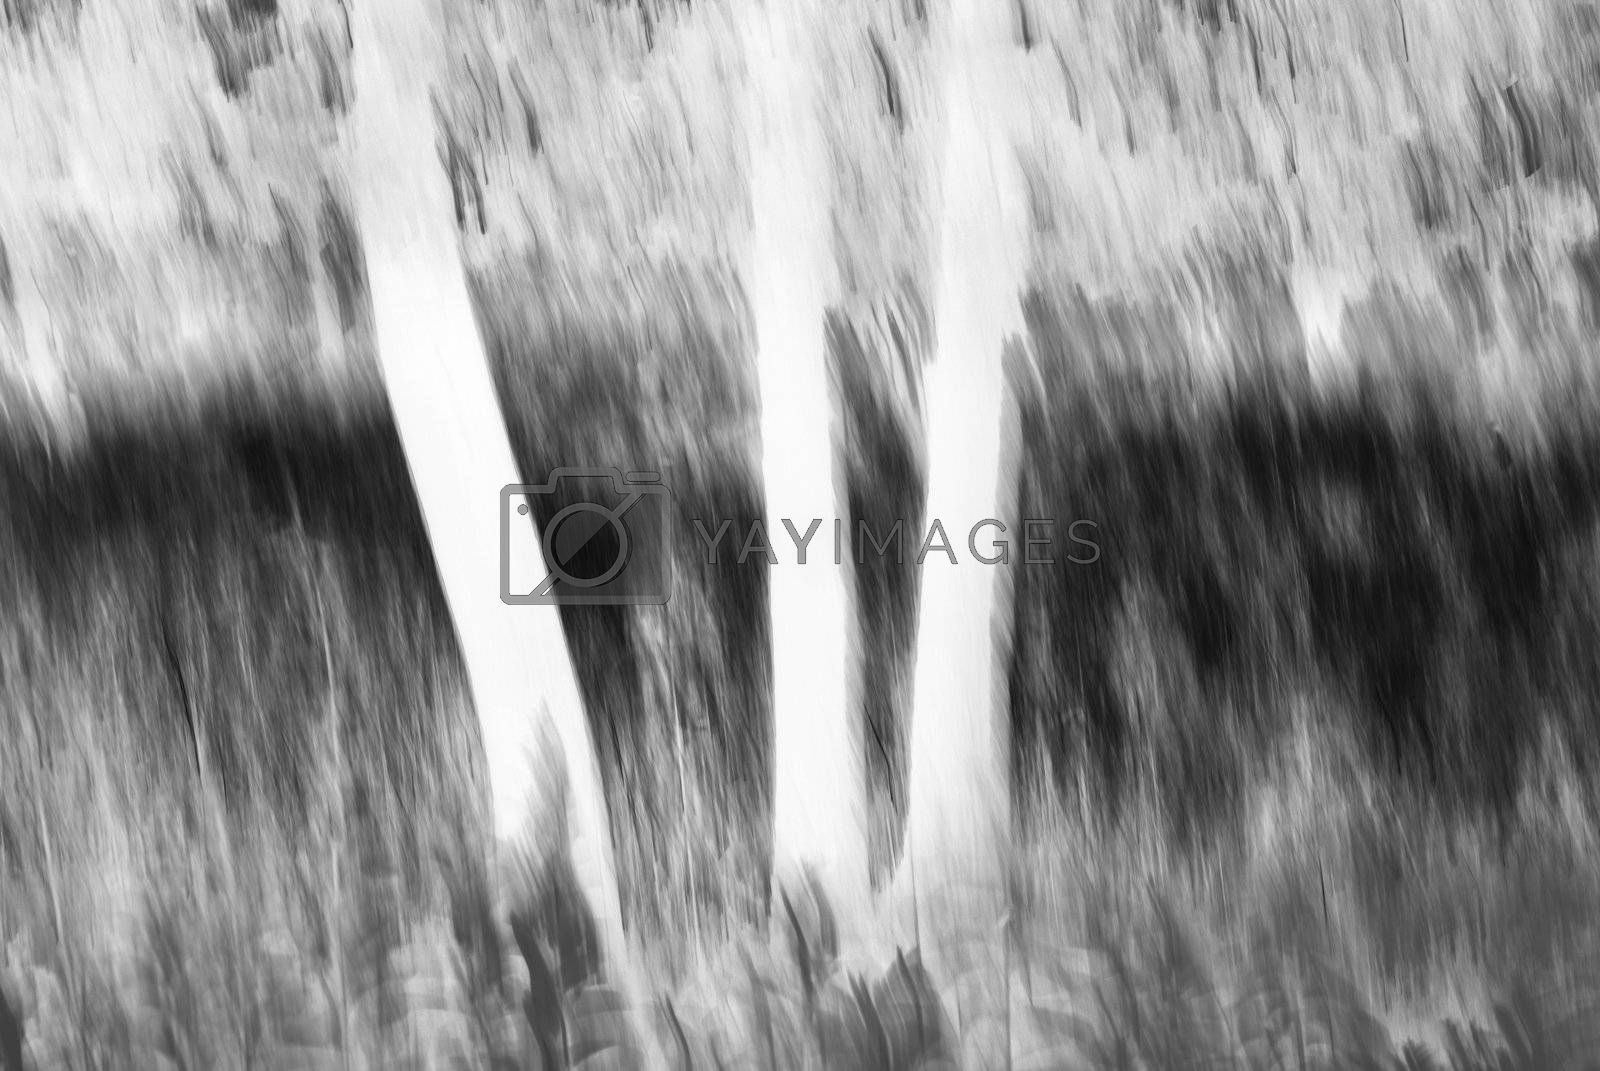 Royalty free image of Abstract Tree 3 by chimmi